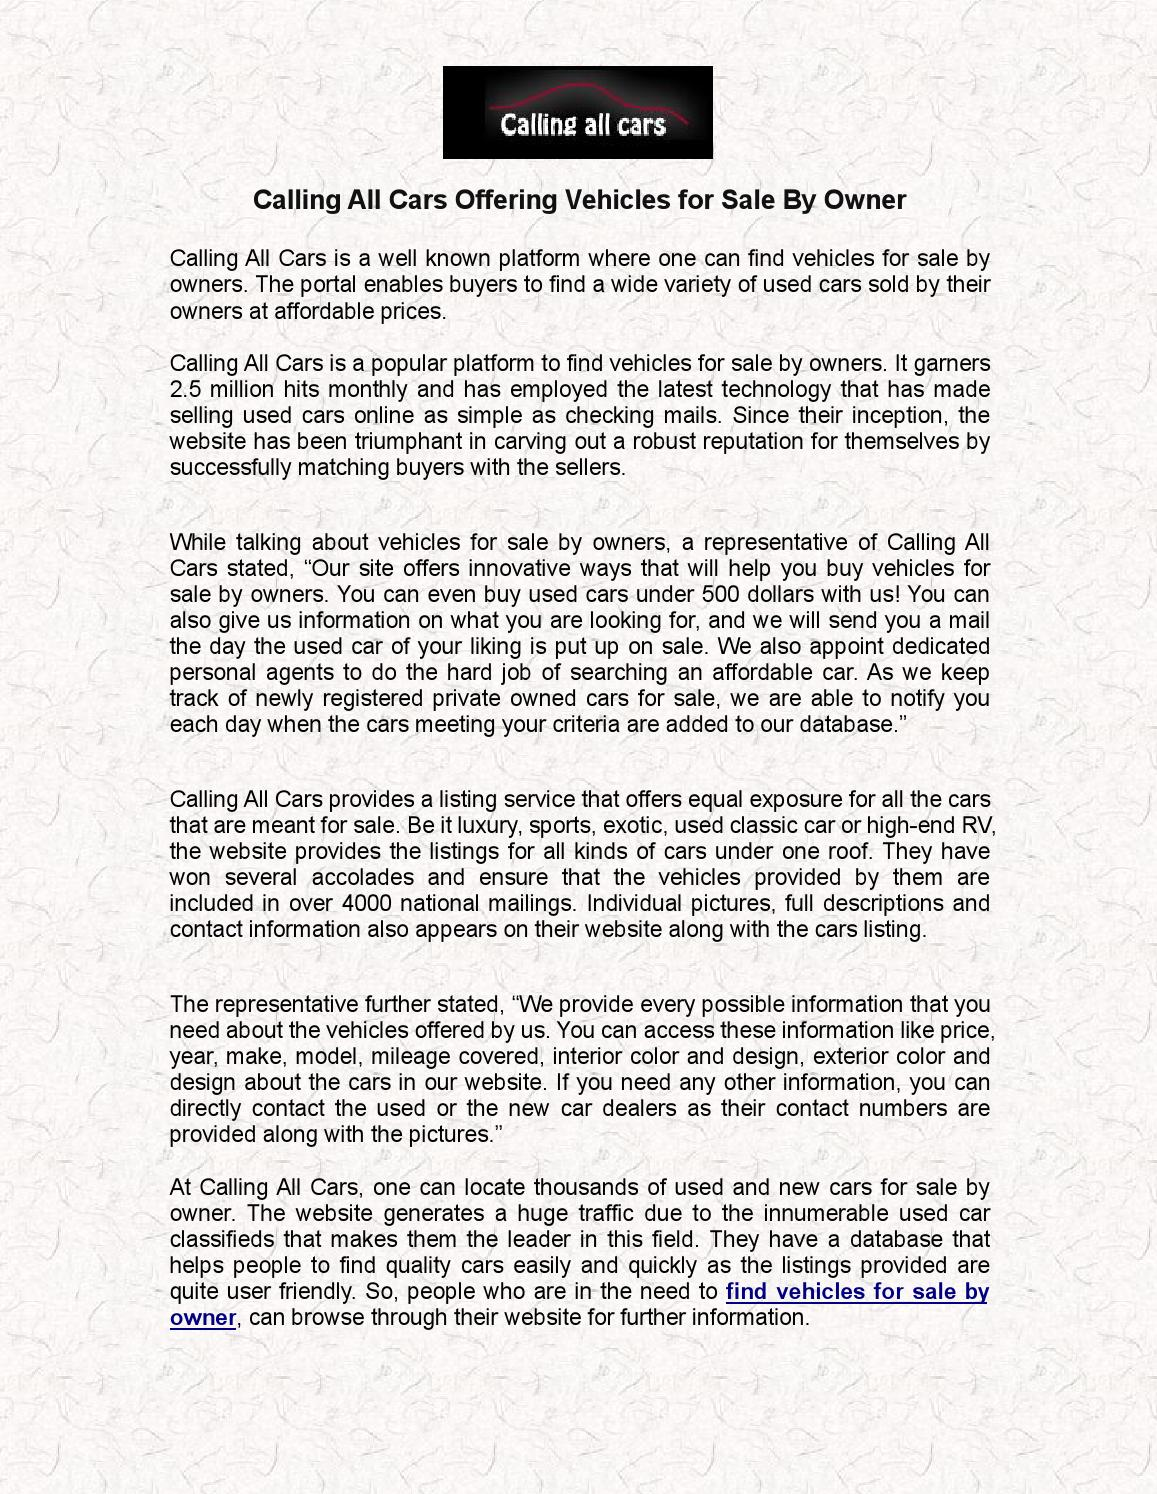 Calling all cars offering vehicles for sale by owner by cacars - issuu